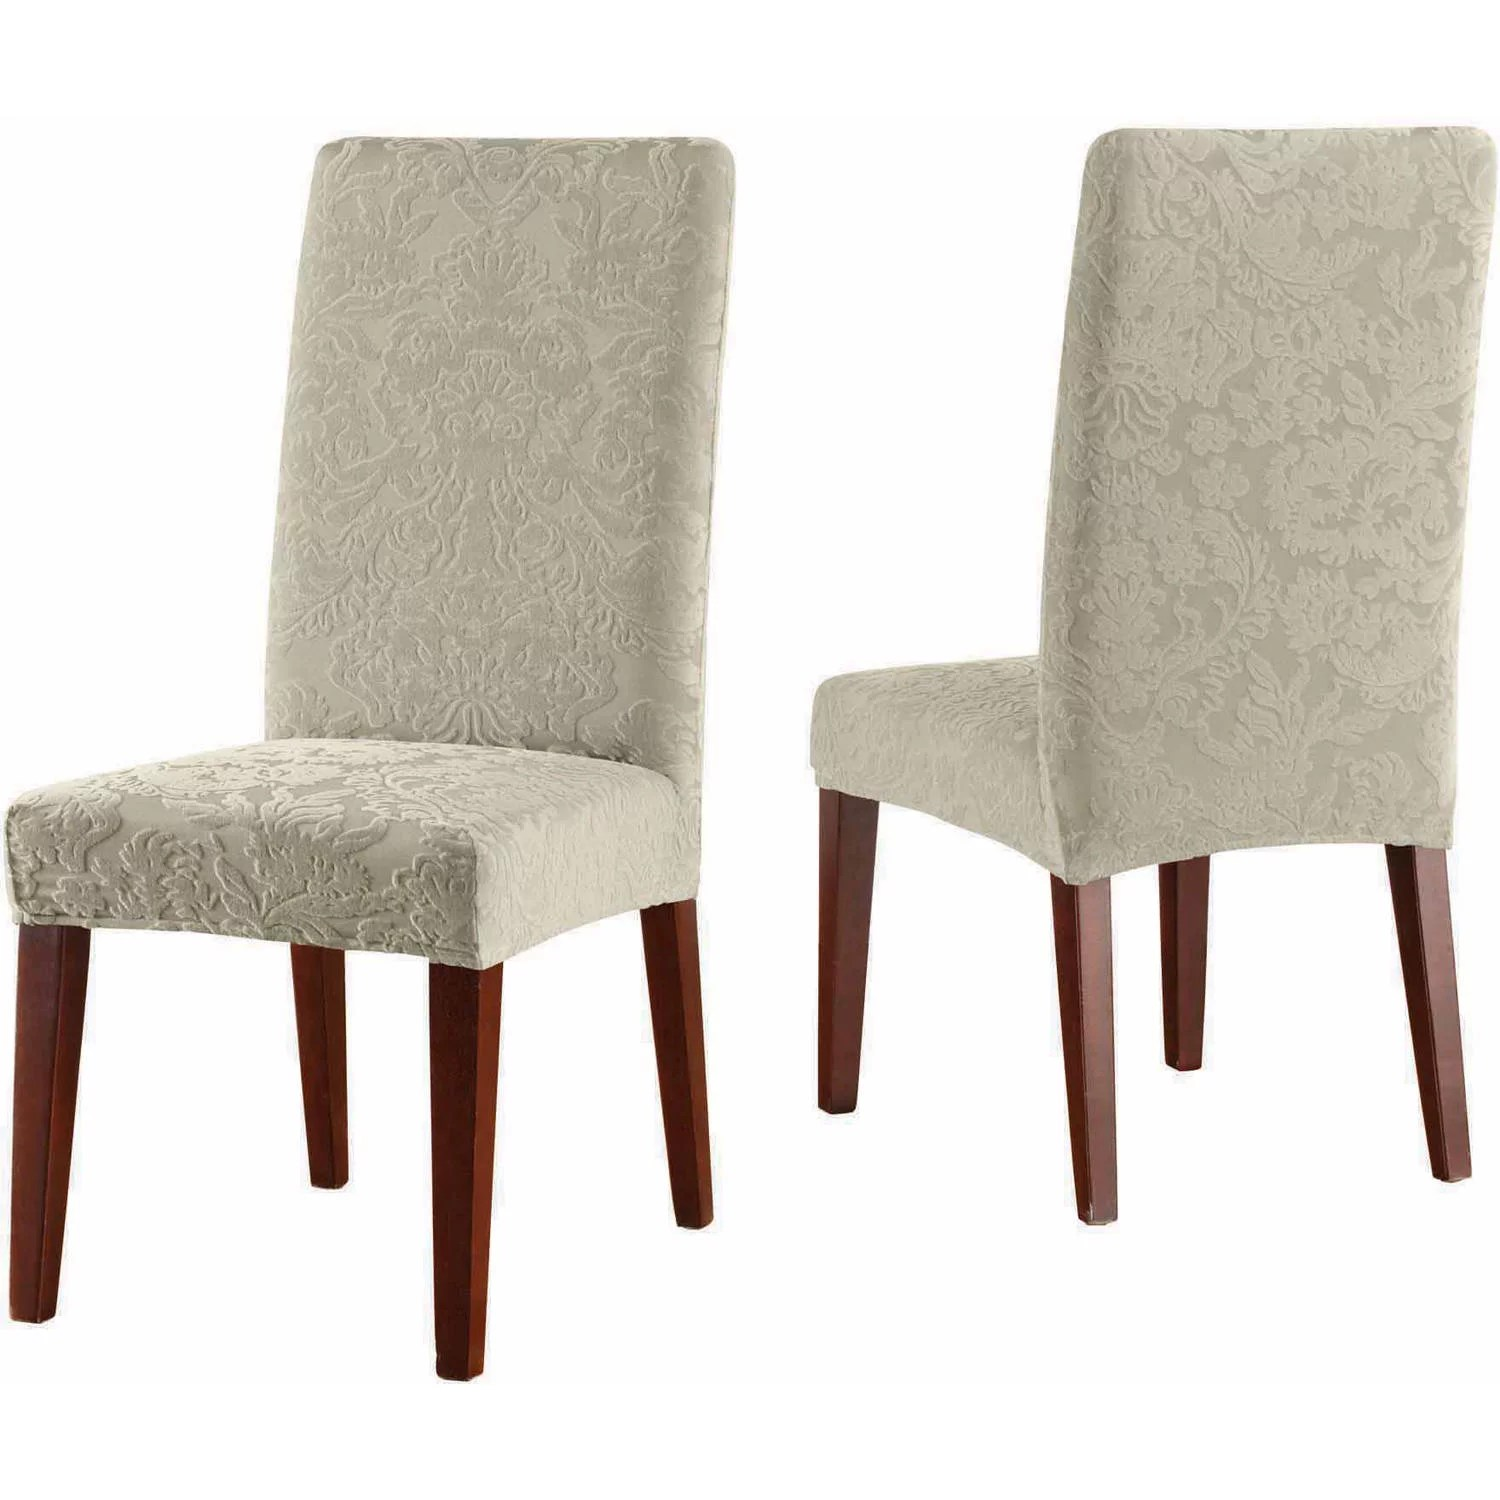 Surefit Chair Covers Sure Fit Stretch Jacquard Damask Short Dining Room Chair Slipcover